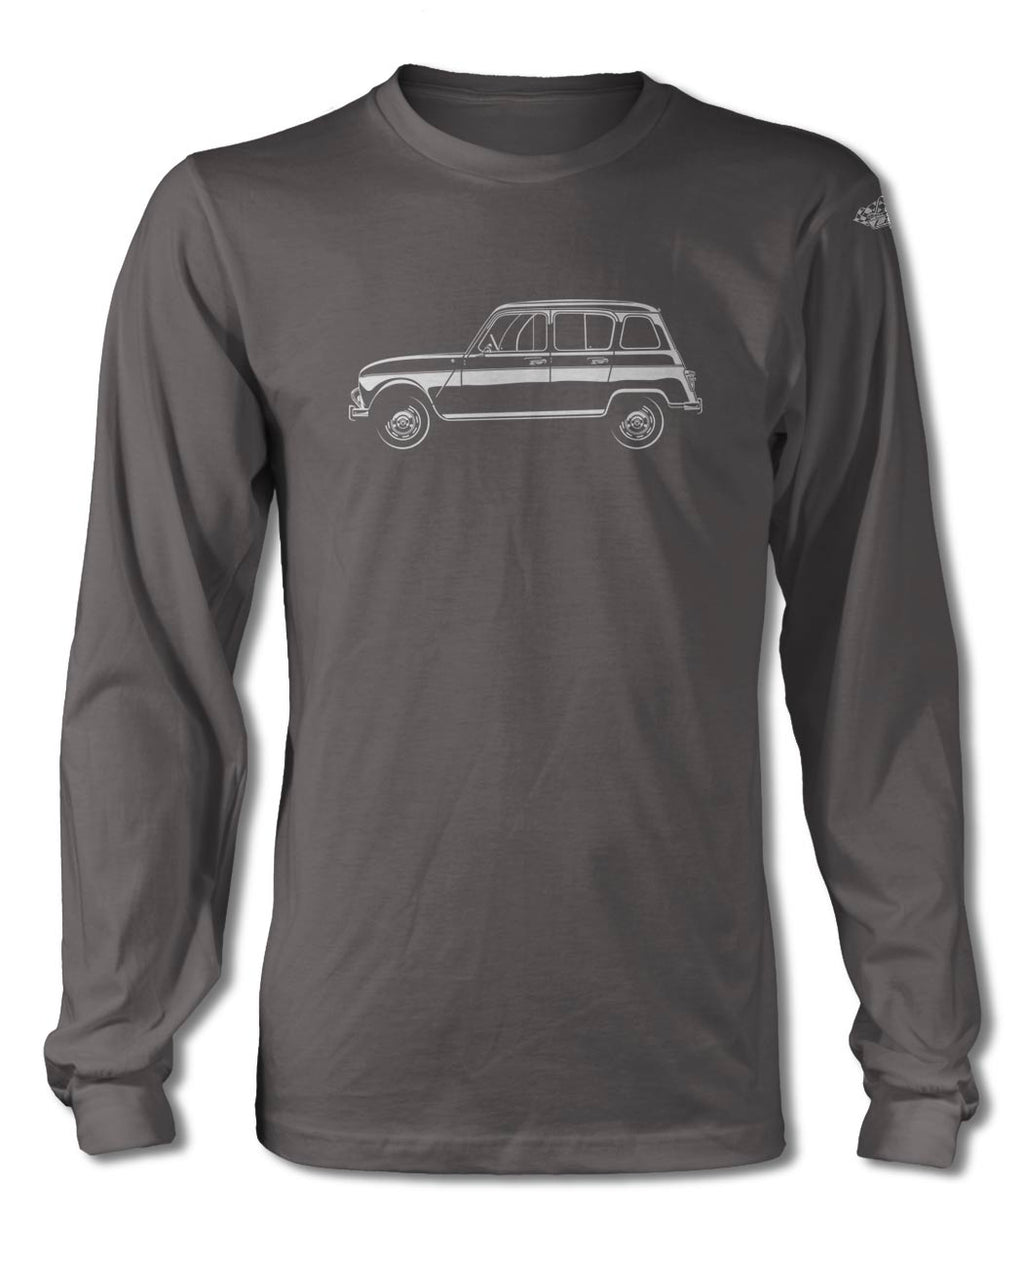 Renault R4 4L 1961 - 1977 T-Shirt - Long Sleeves - Side View